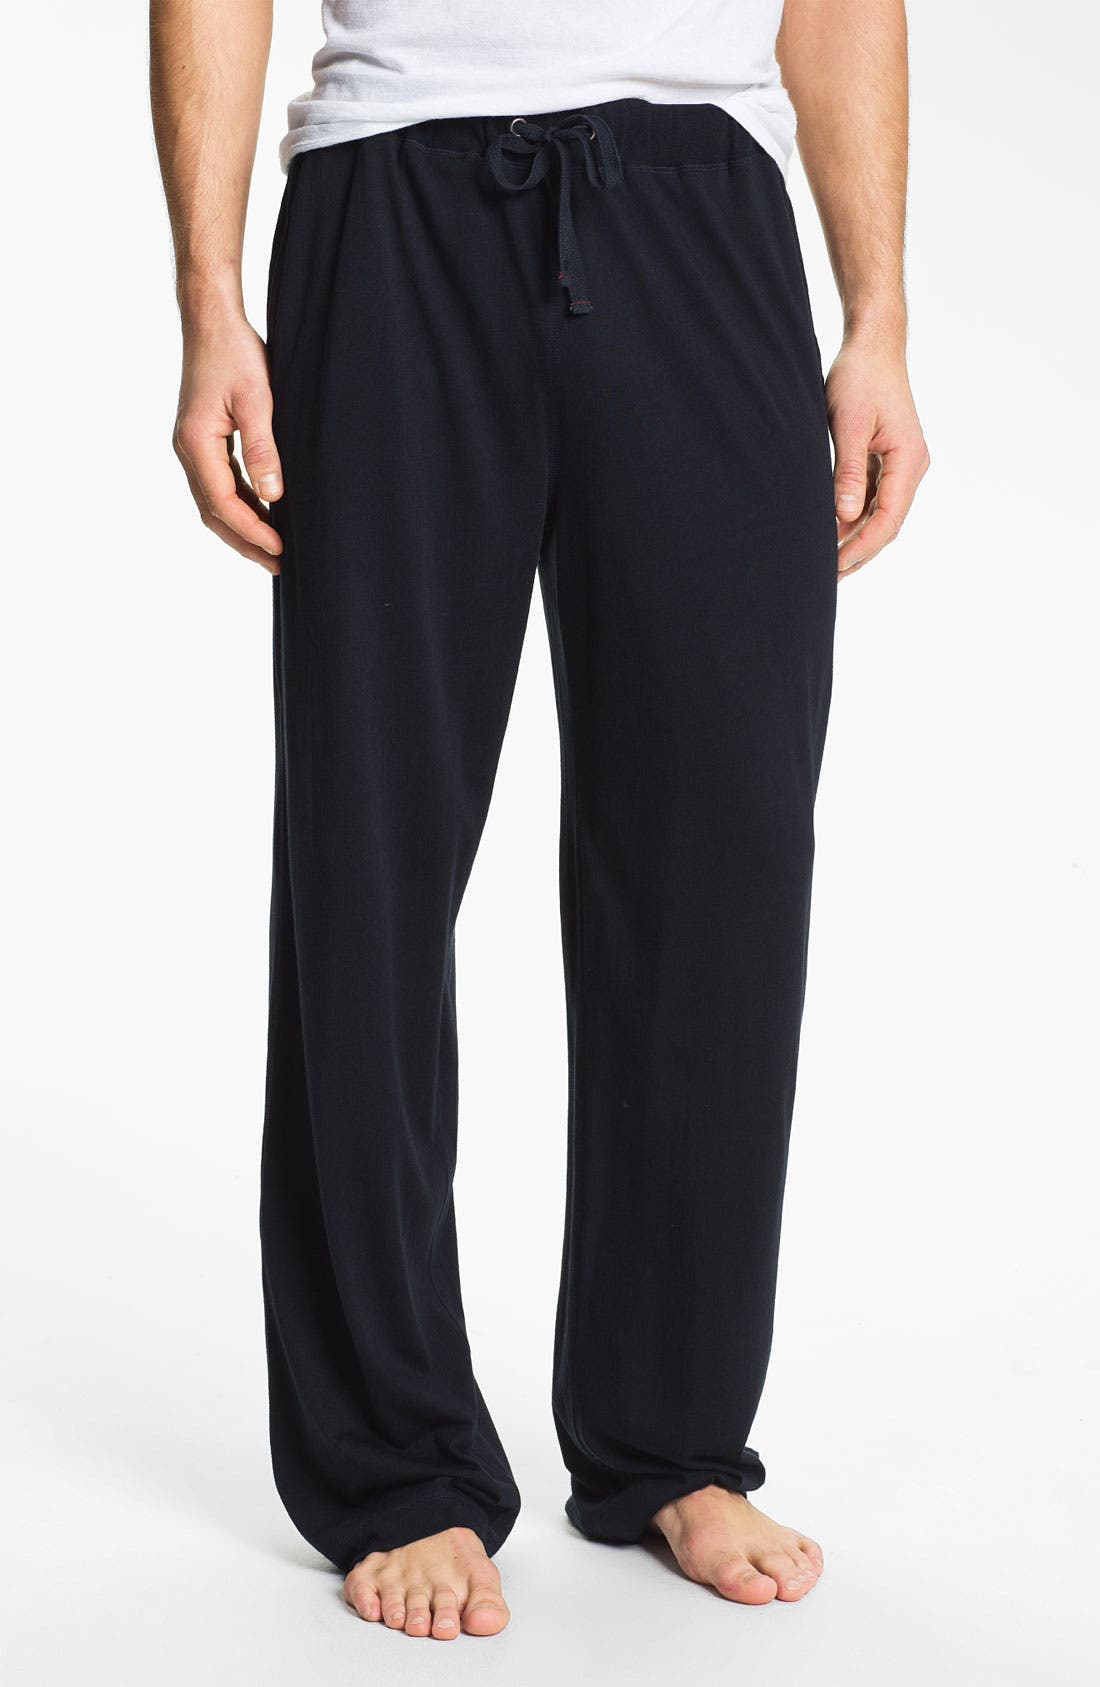 Alternate Image 1 Selected - Daniel Buchler Pima Cotton & Modal Lounge Pants